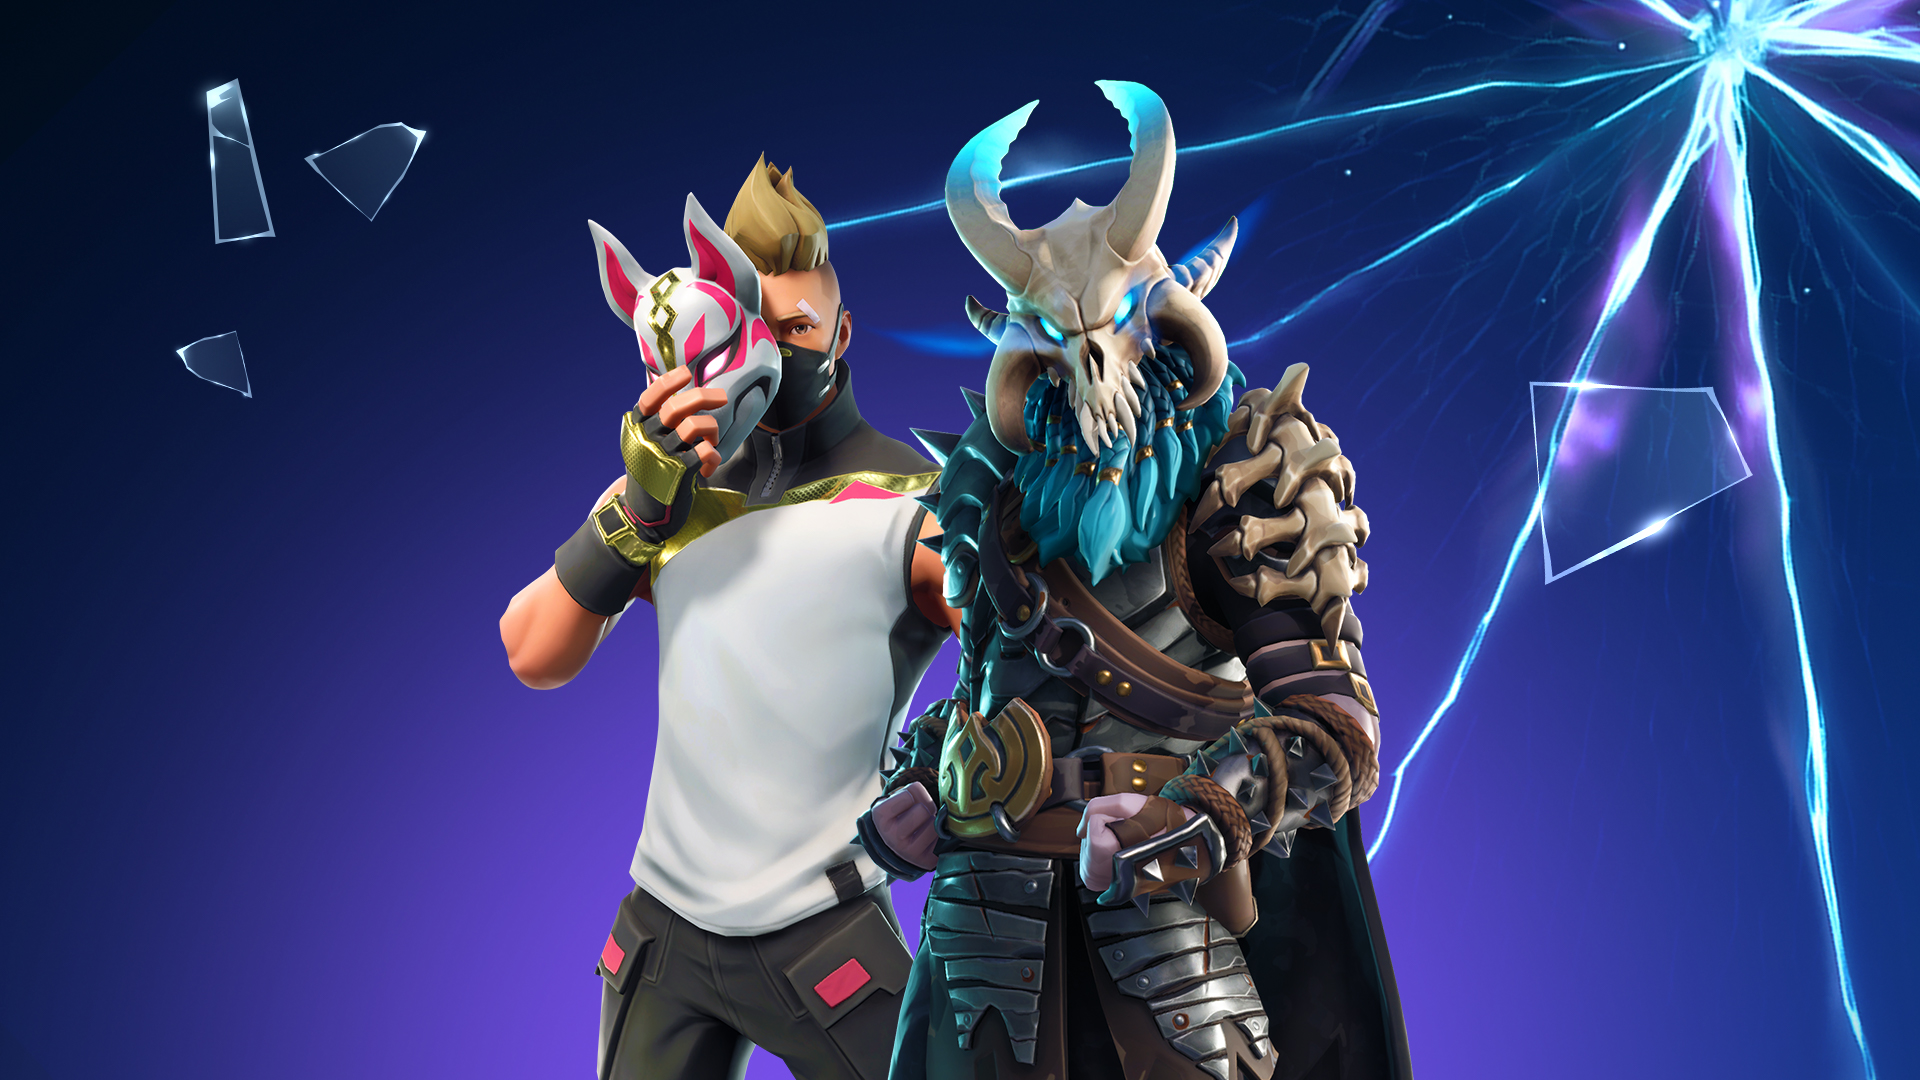 Fortnite Season 5 patch notes: read all the v5 0 changes - Polygon